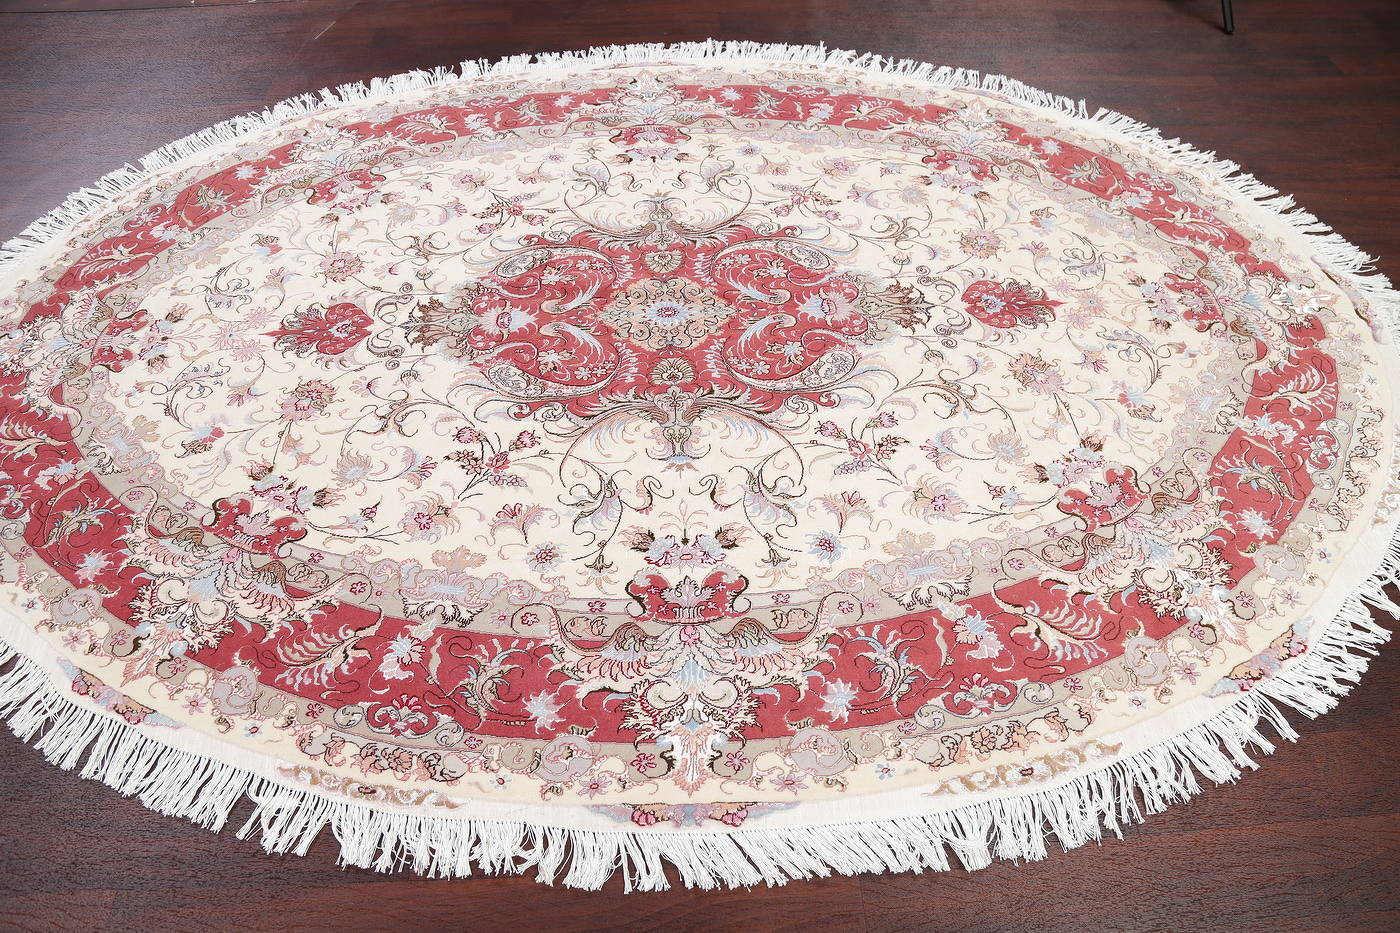 Ivory Floral Tabriz Persian Oval Area Rug 7x10 image 14